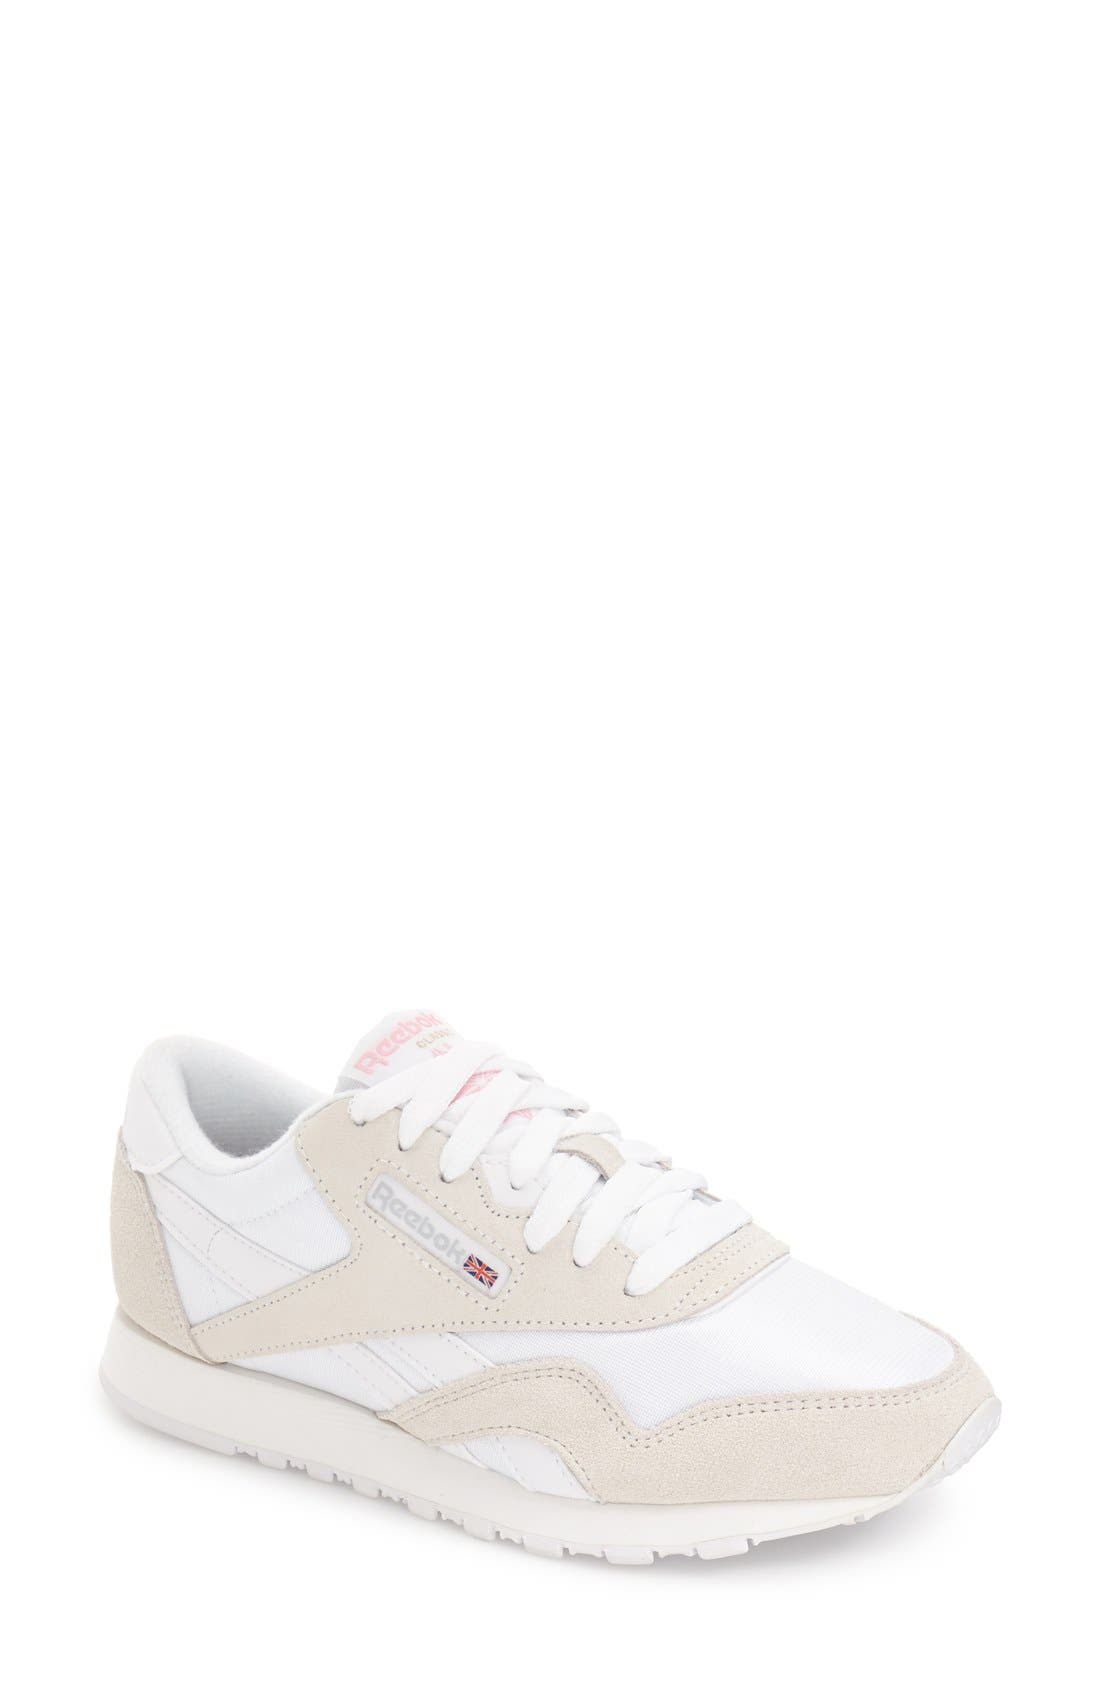 Alternate Image 1 Selected - Reebok 'Classic' Sneaker (Women)